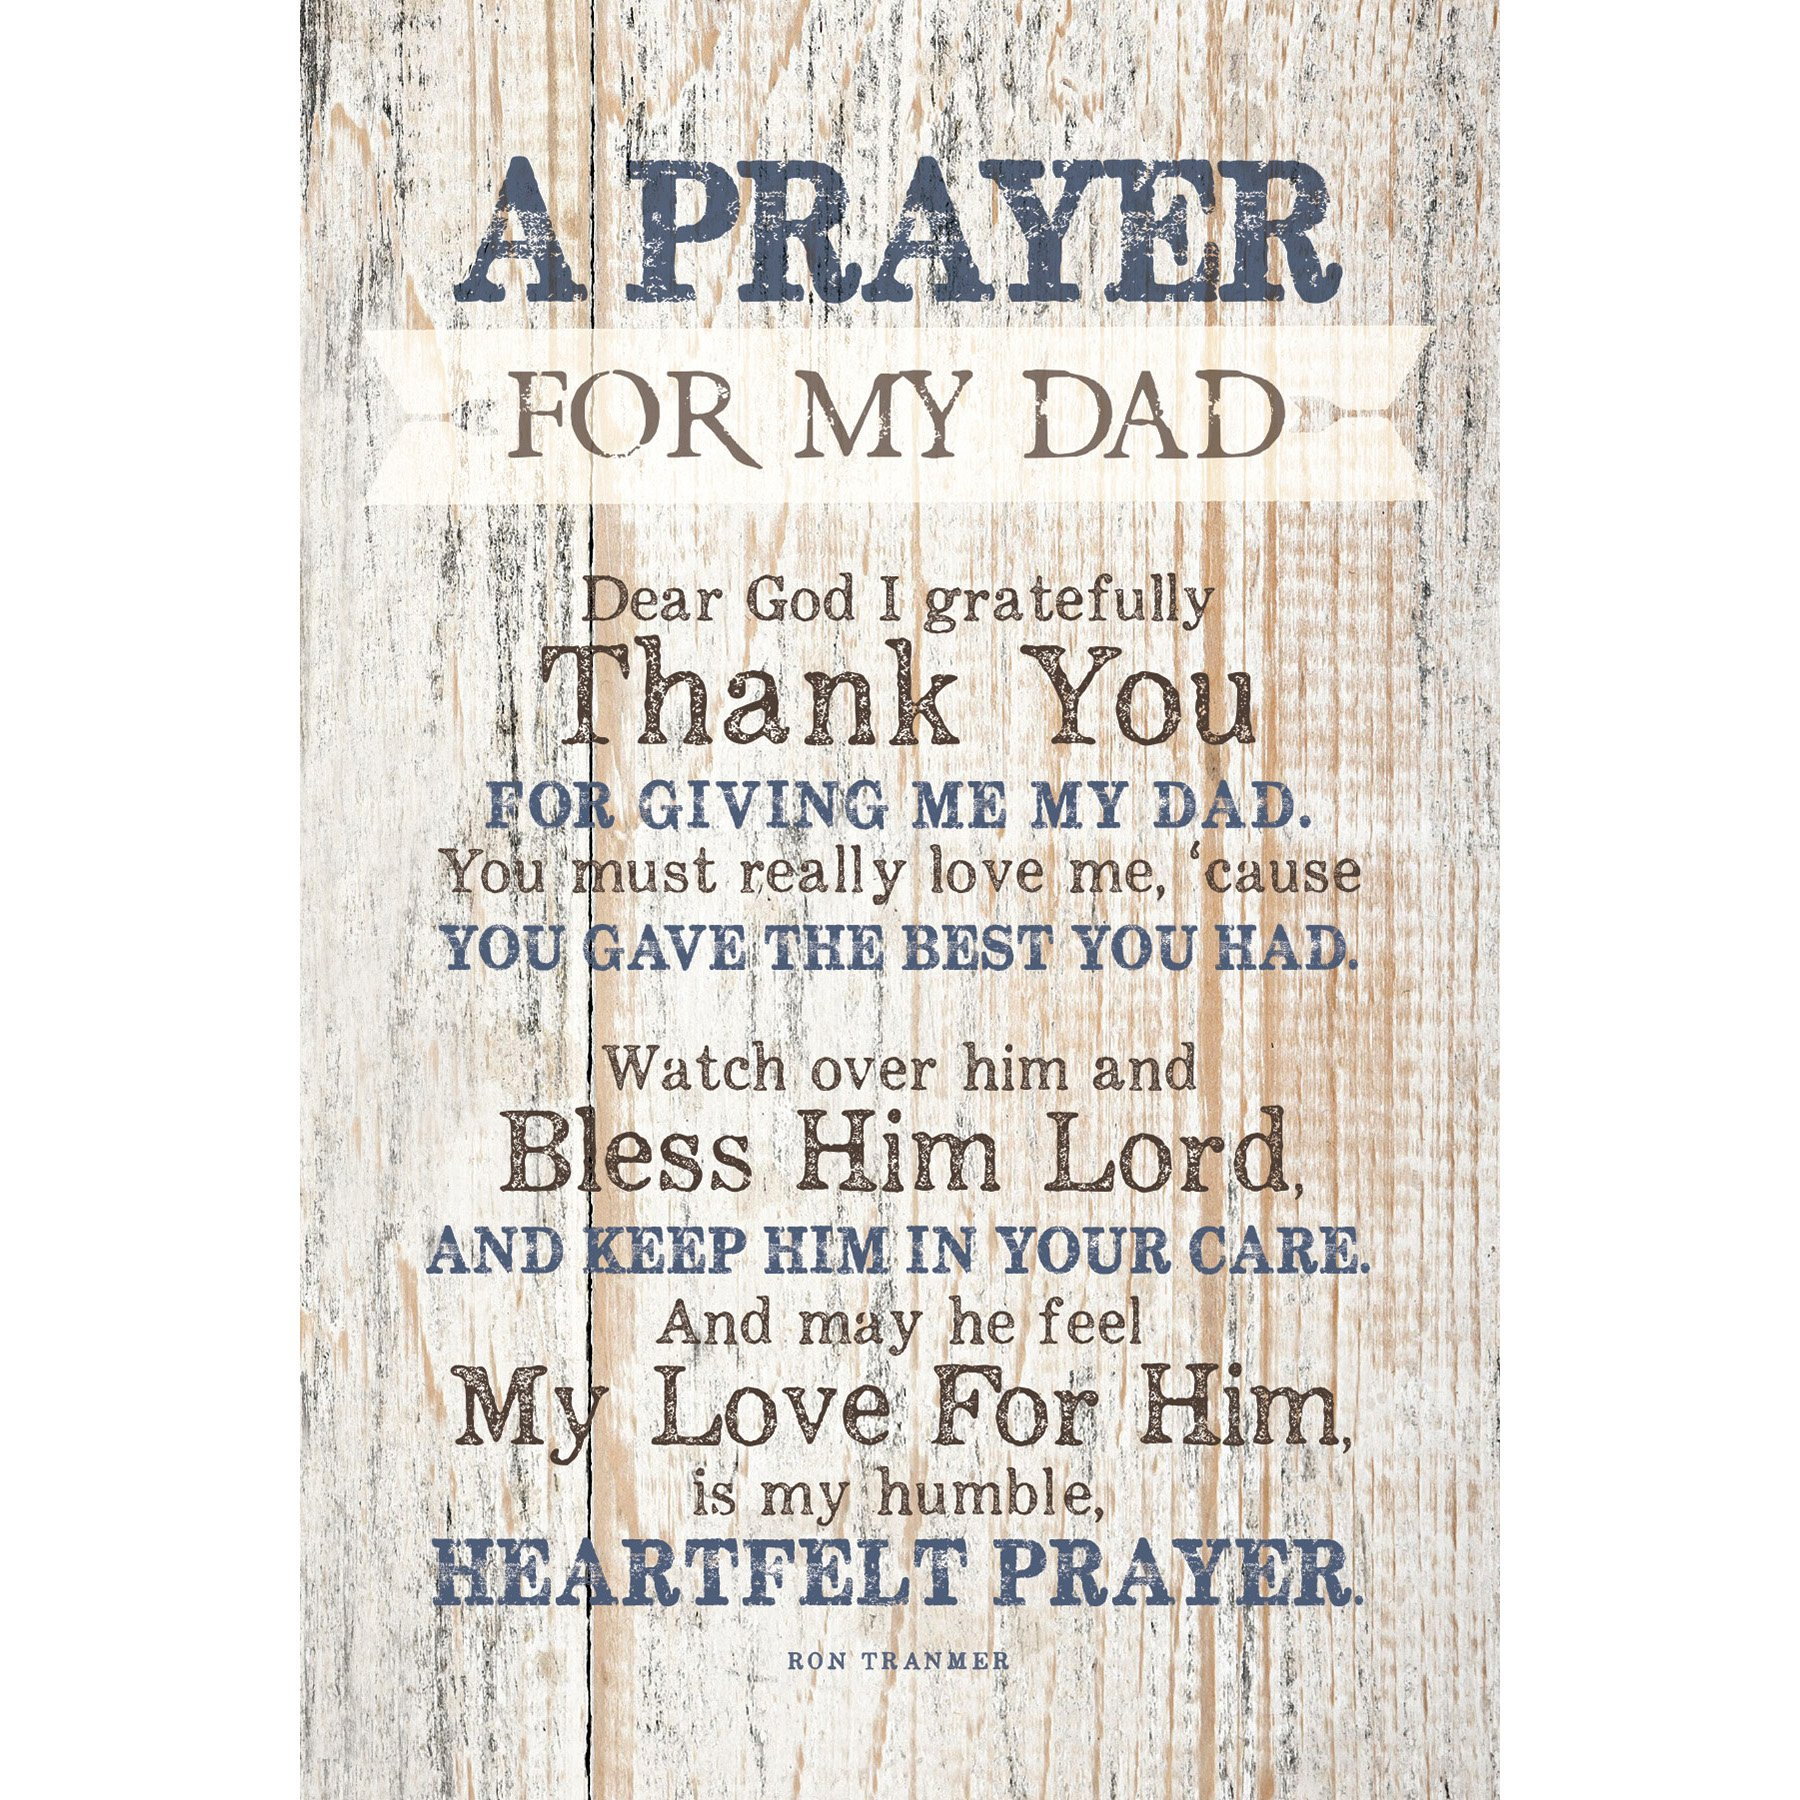 Dad (Father) Prayer Wood Plaque with Inspiring Quotes 6x9 - Classy Vertical Frame Wall & Tabletop Decoration | Easel & Hanging Hook | Dear God I Gratefully Thank You for Giving me My dad by Dexsa